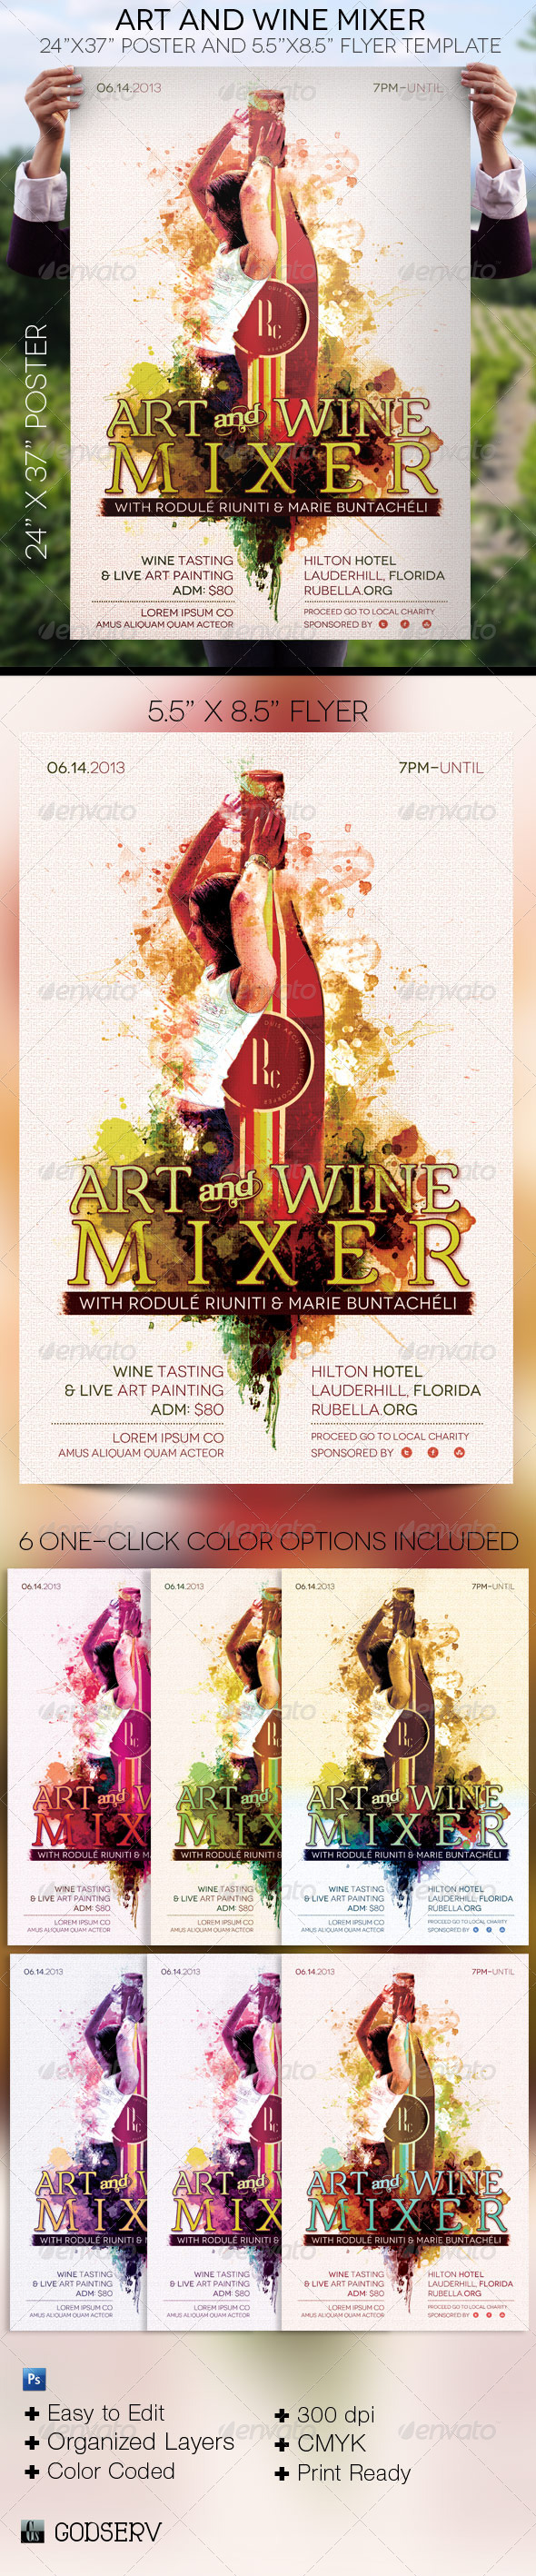 GraphicRiver Art and Wine Mixer Poster and Flyer Template 4362957